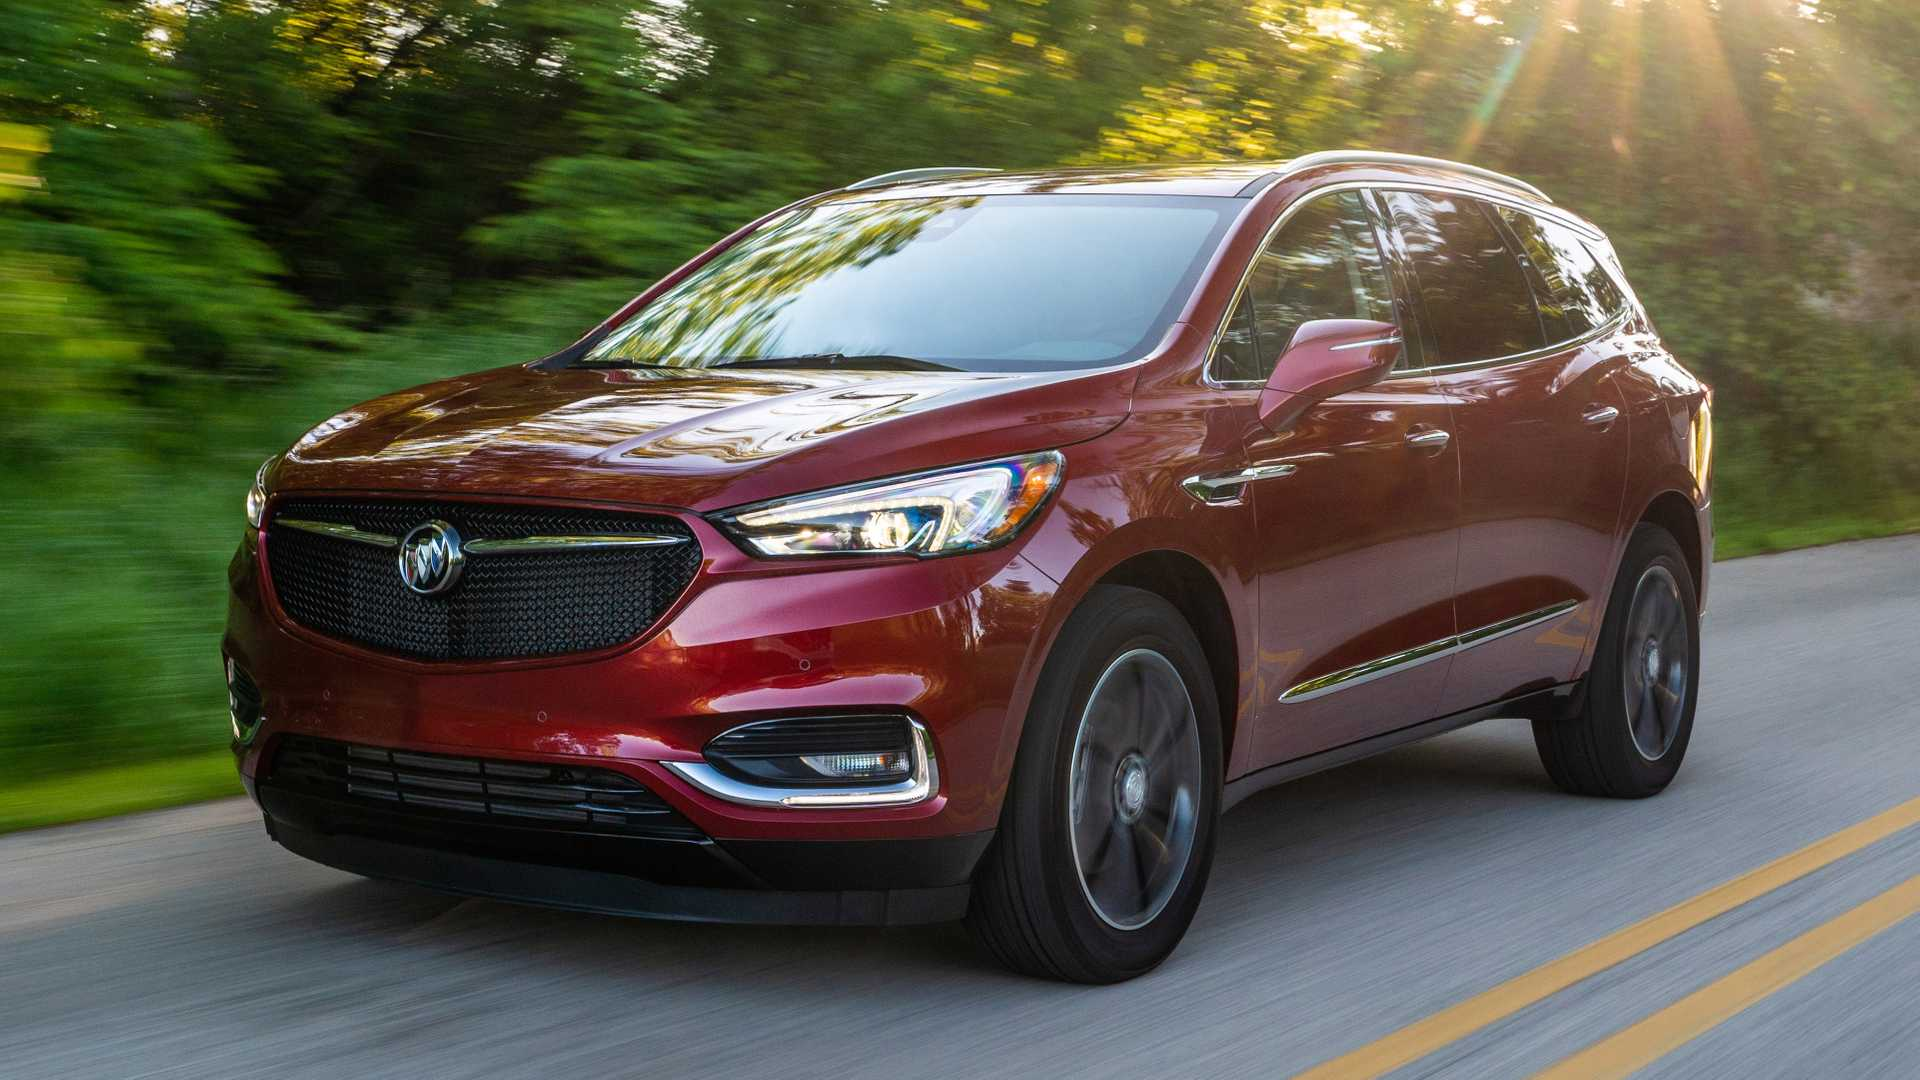 44 The 2020 Buick Enclave Interior Pricing